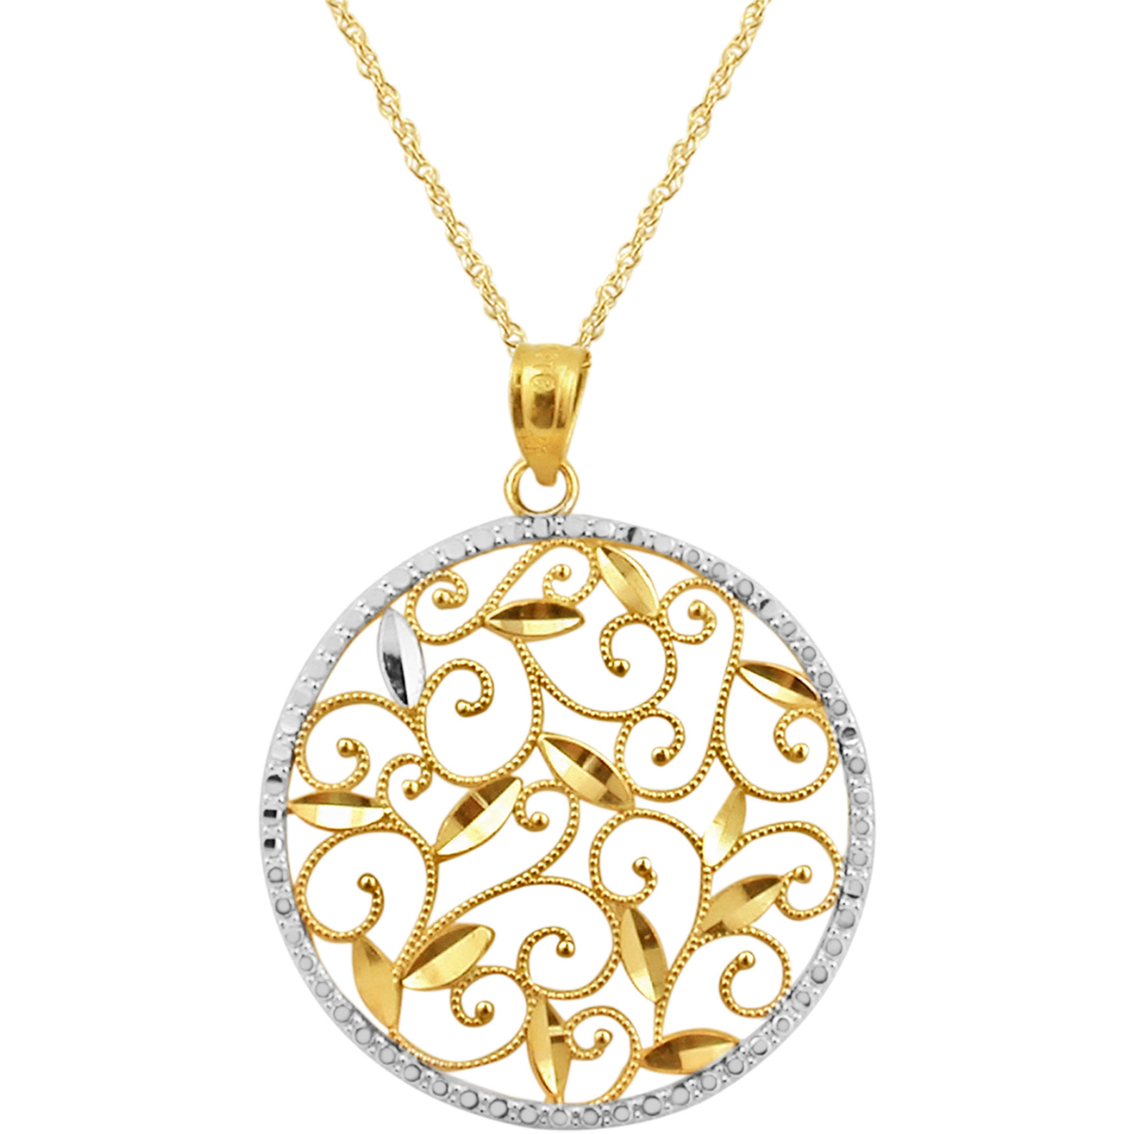 10k two tone diamond cut round pendant gold necklaces pendants 4095 audiocablefo